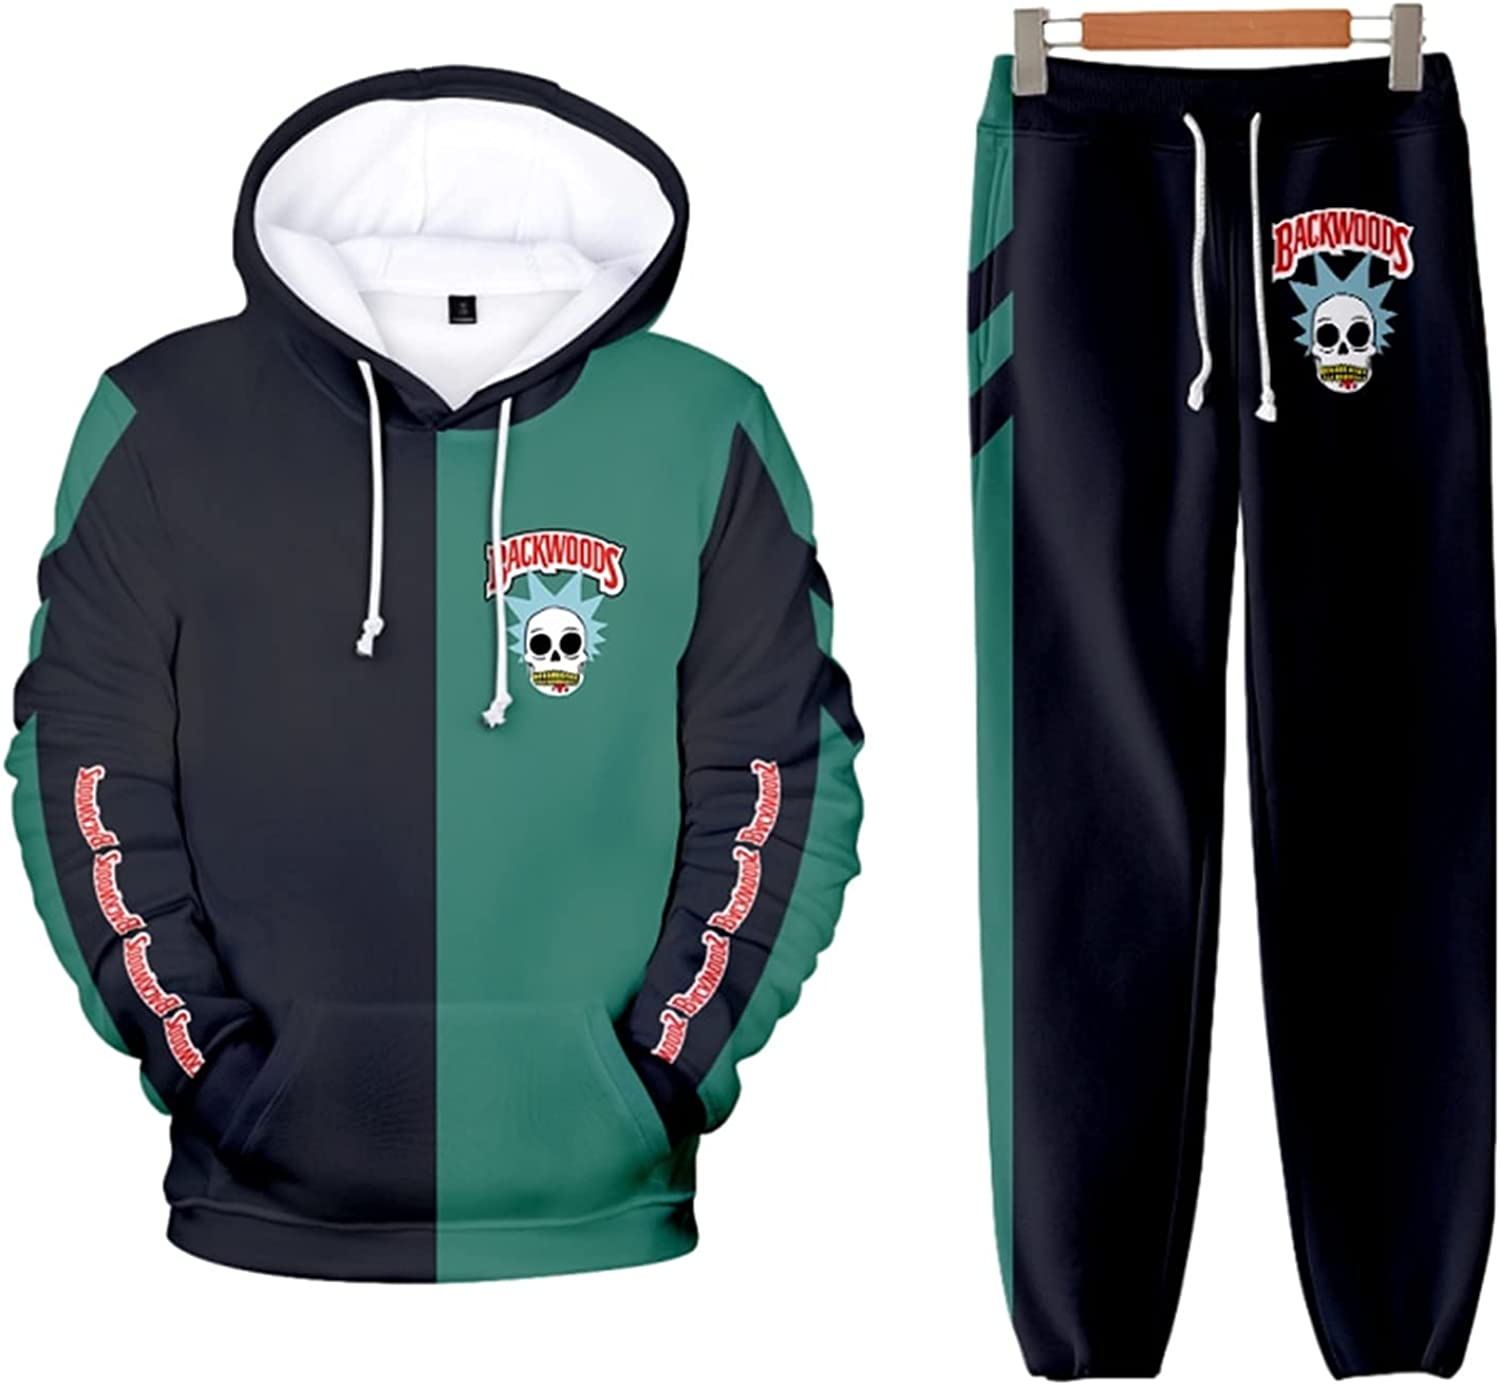 KAMIZE Cigar Funny Hoodie Sweatpants Sweatsh Suit Fashion Casual Brand new Gifts